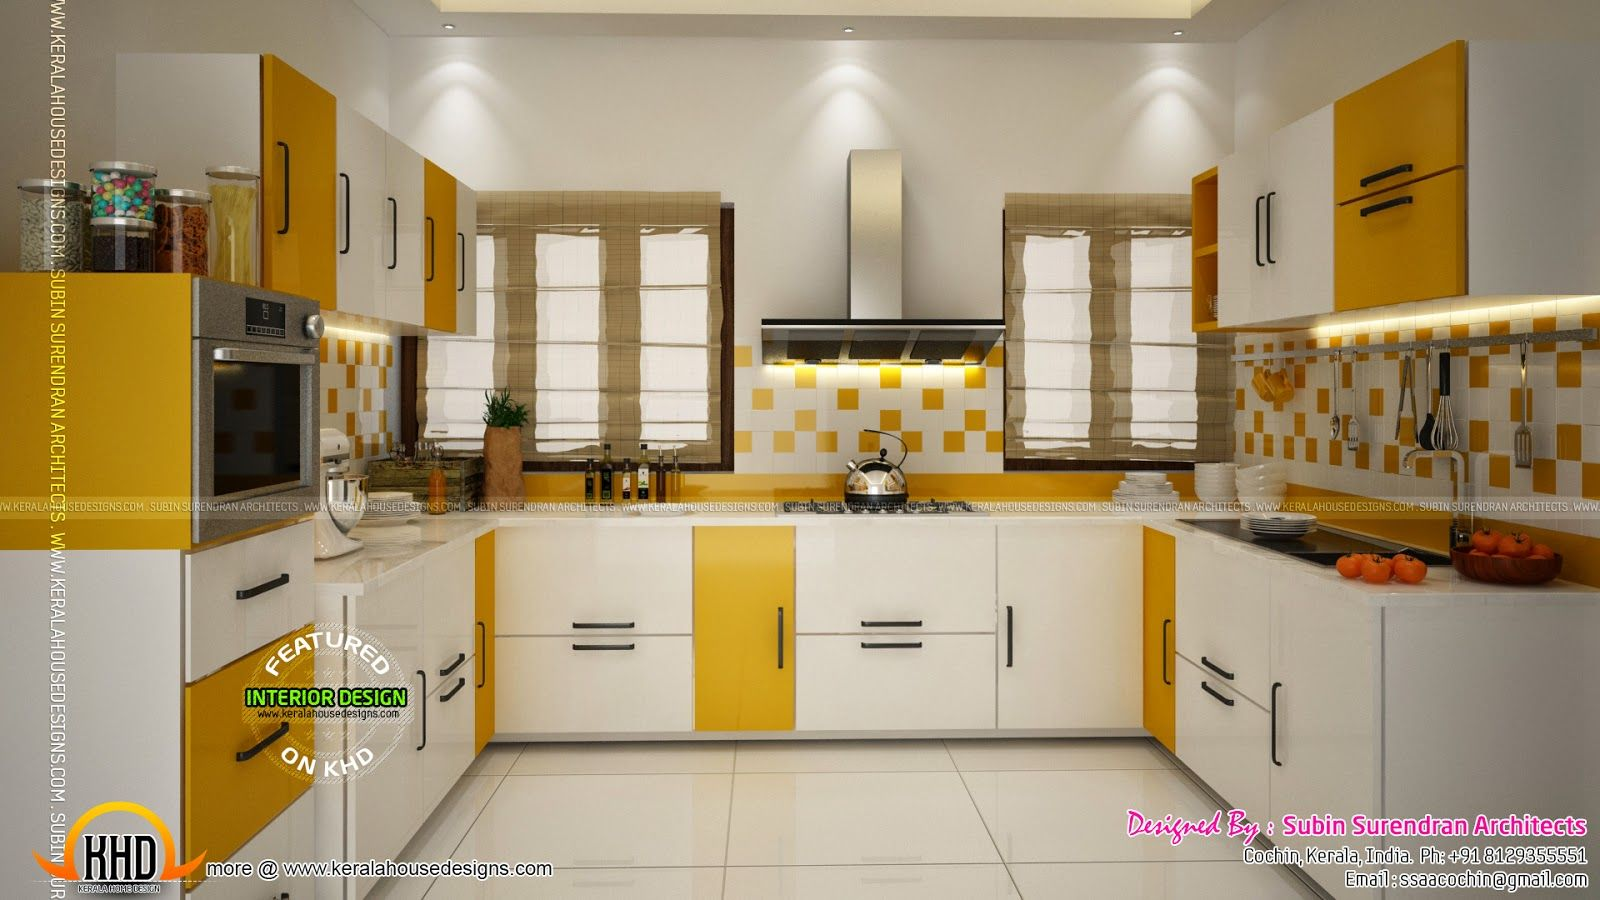 Captivating Kerala Home Design Floor Plans Interior Design Cochin Kitchen Interior  Designs Contact House Design